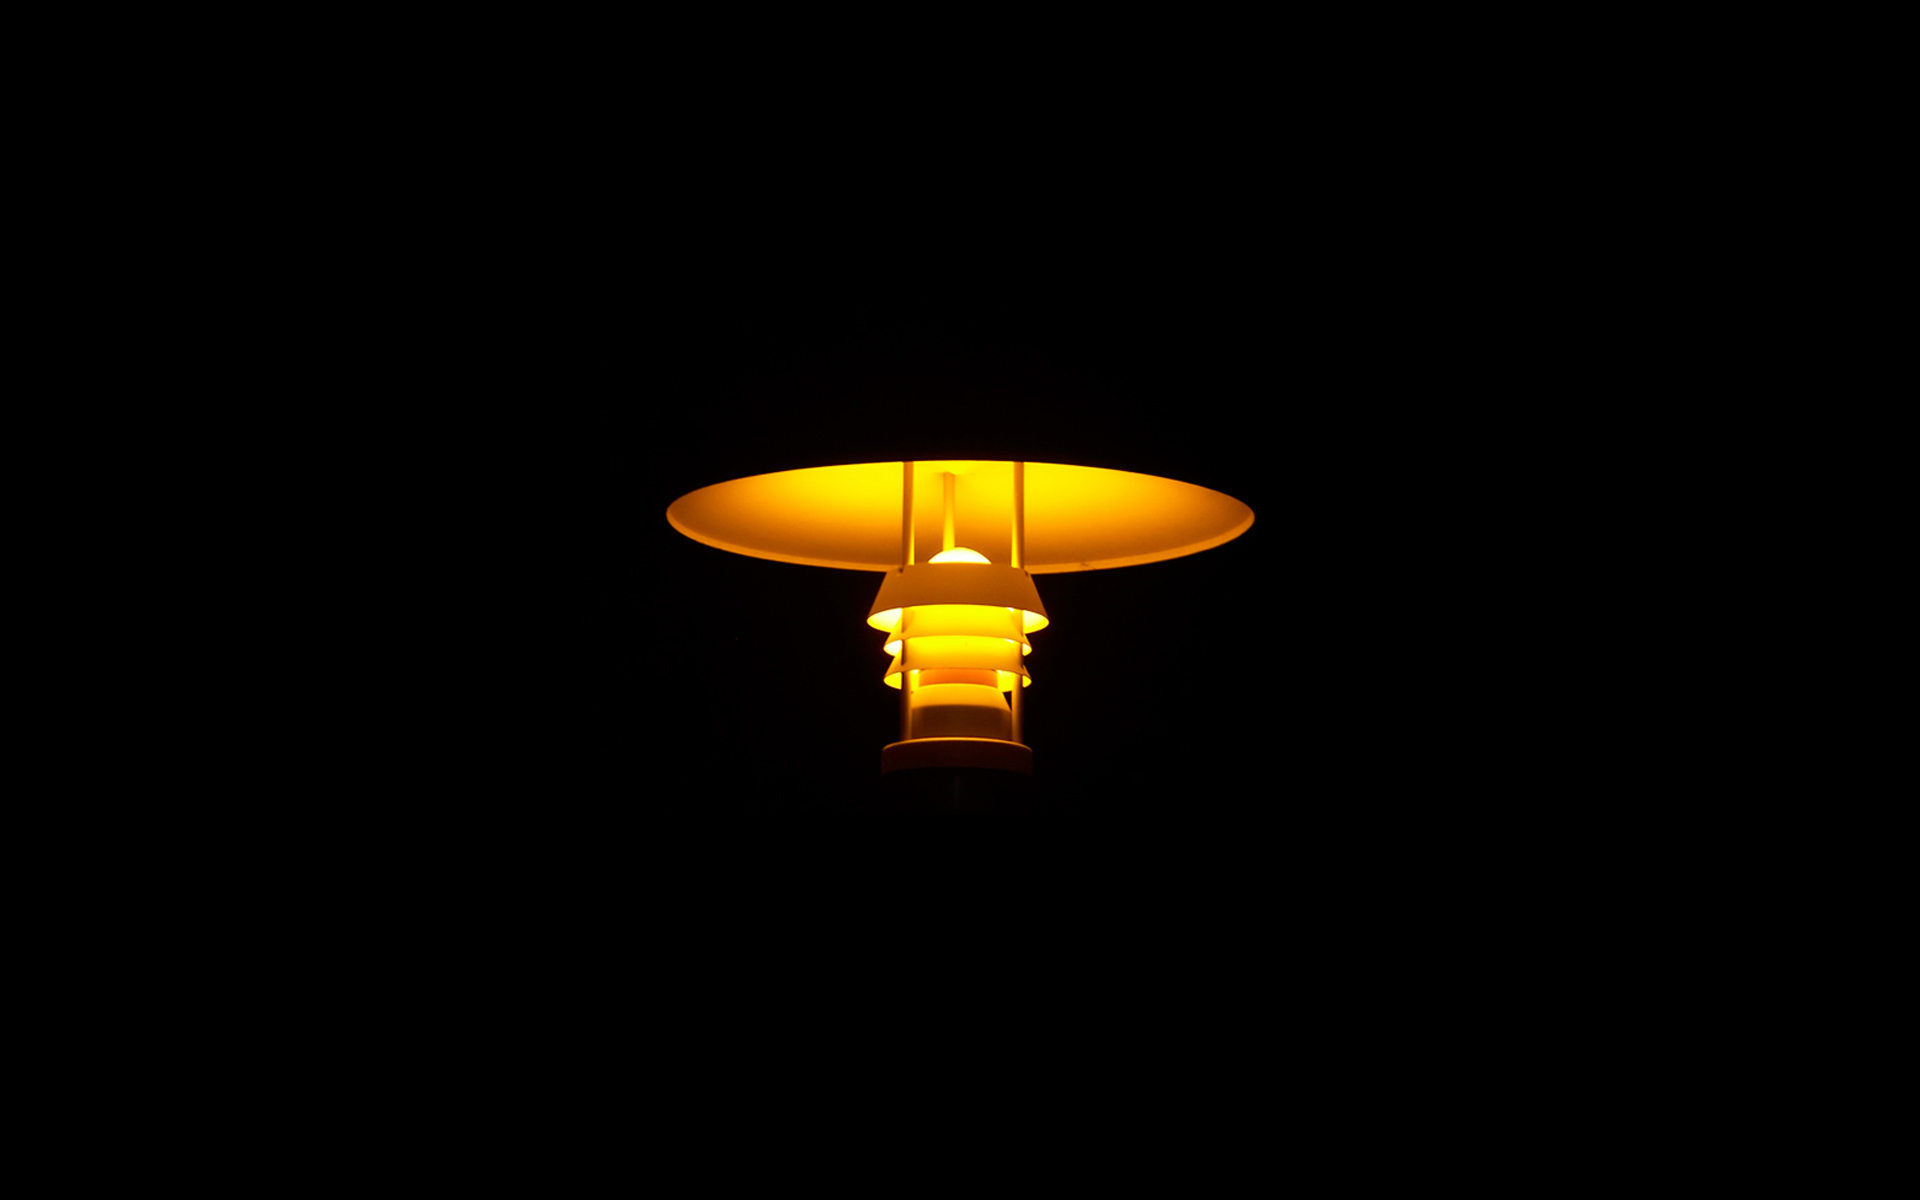 4k Bulb Wallpapers High Quality Download Free